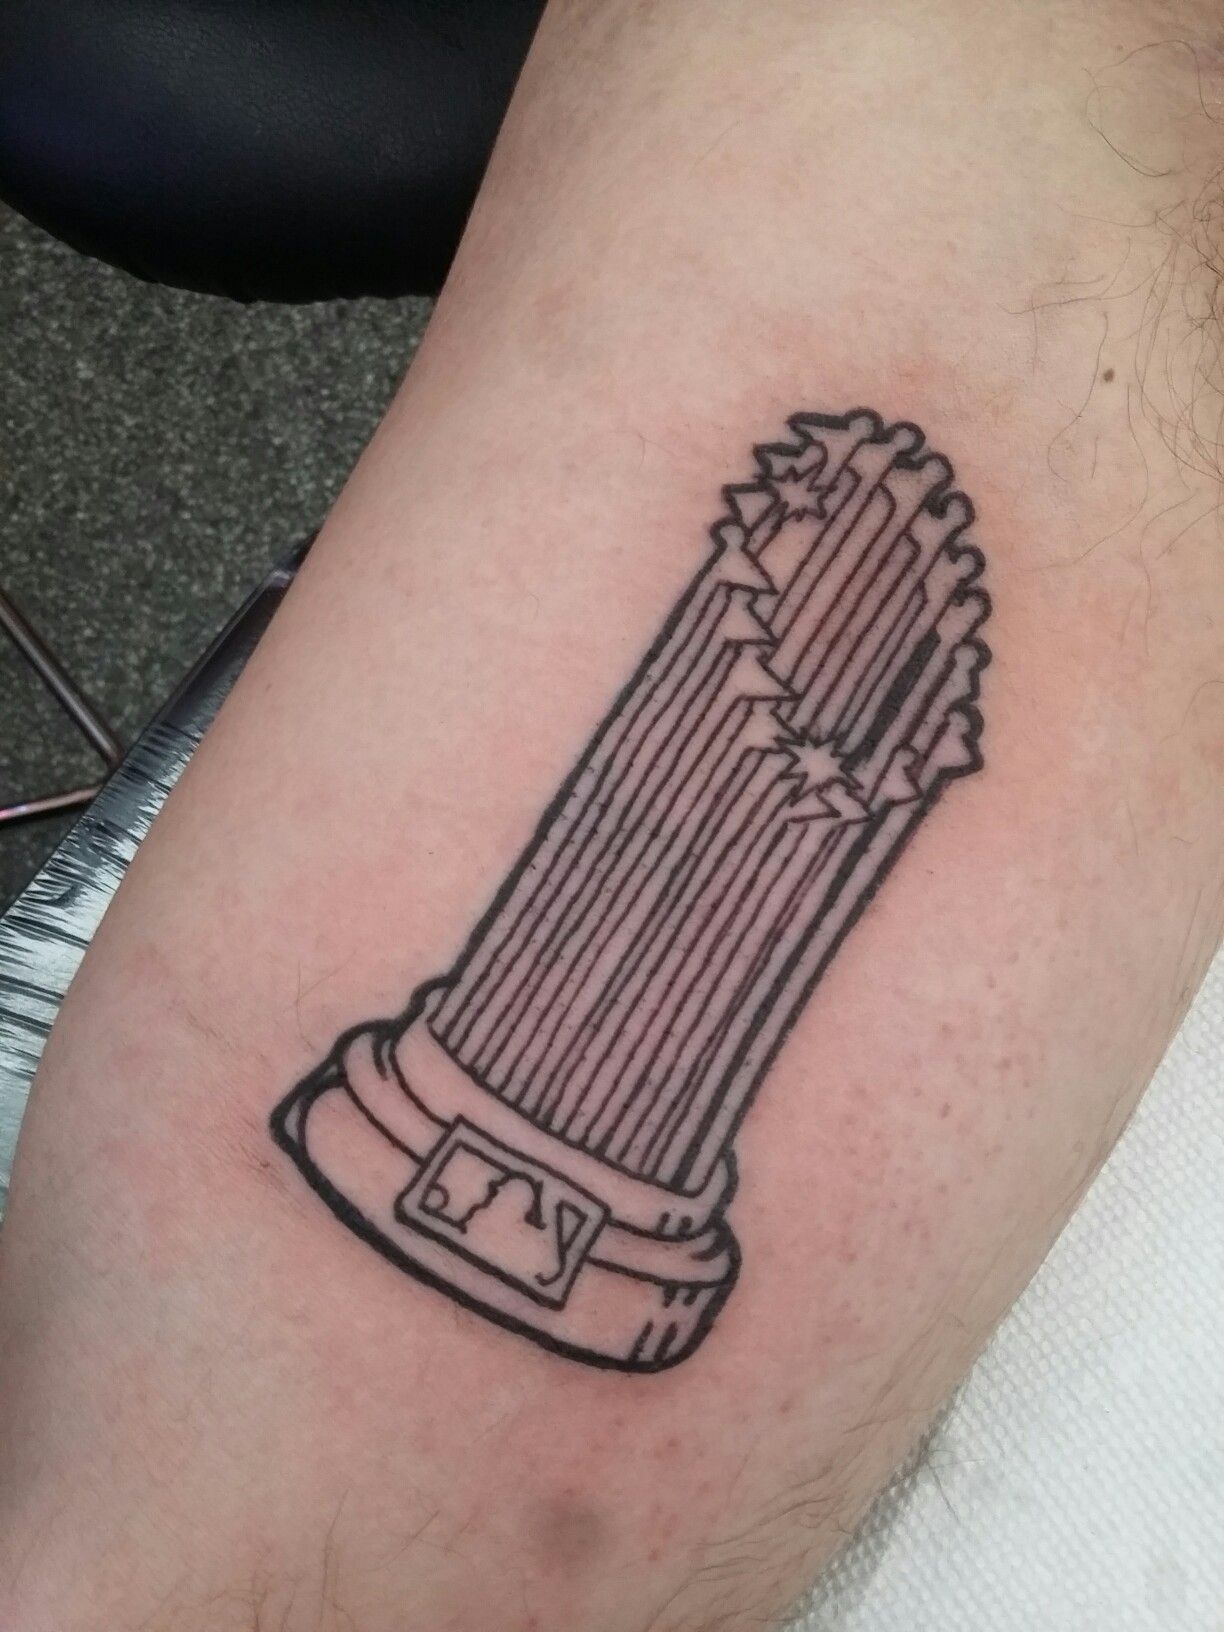 World series trophy tattoo for the chicago cubs chicago for World series tattoo